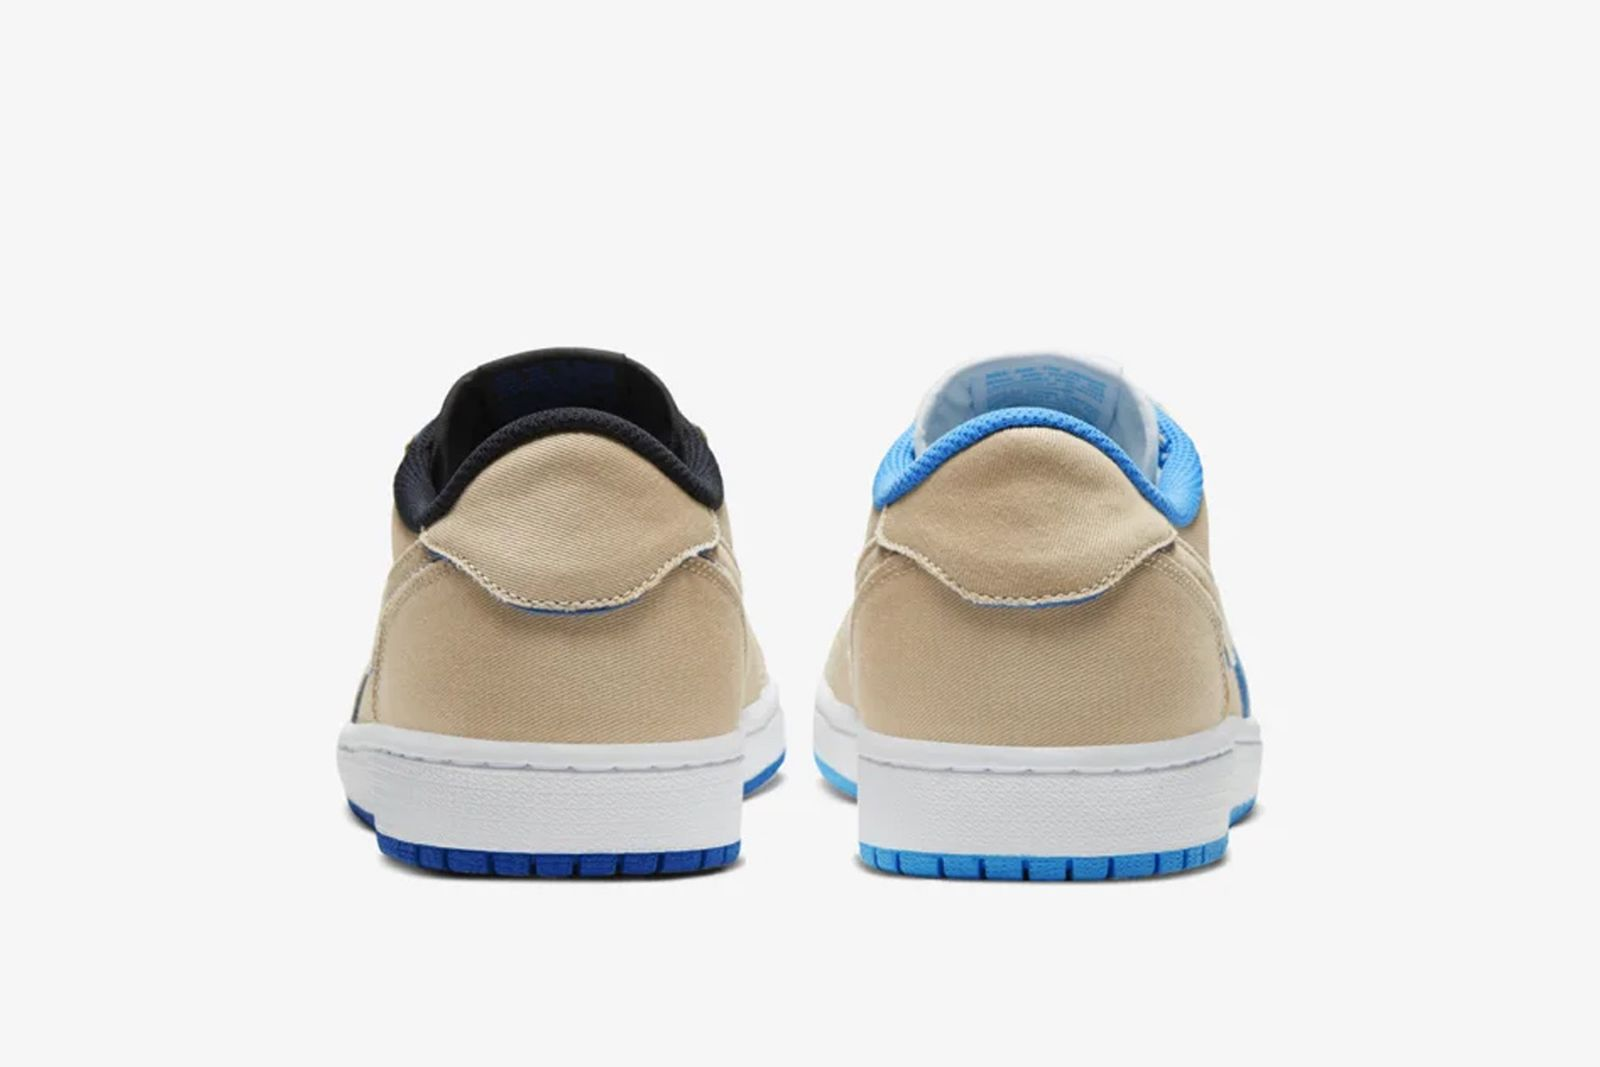 nike-air-jordan-1-low-unc-royal-release-date-price-02